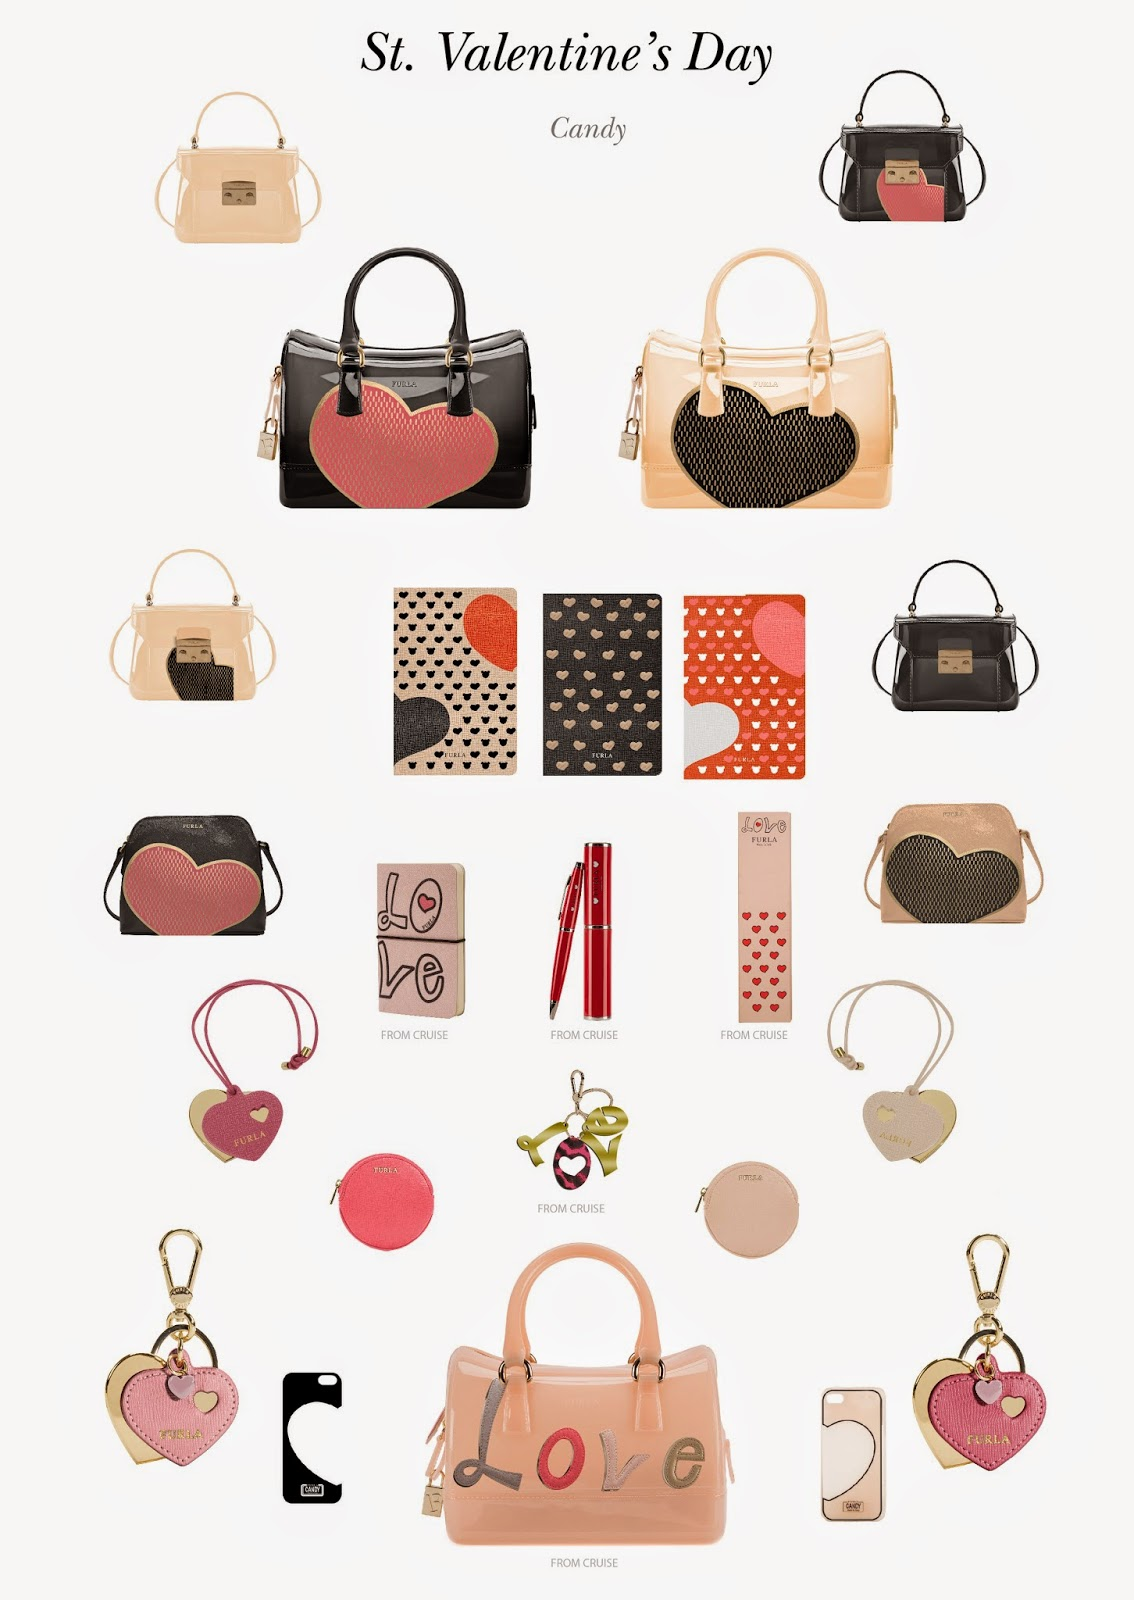 Furla's Valentine's Day Collection